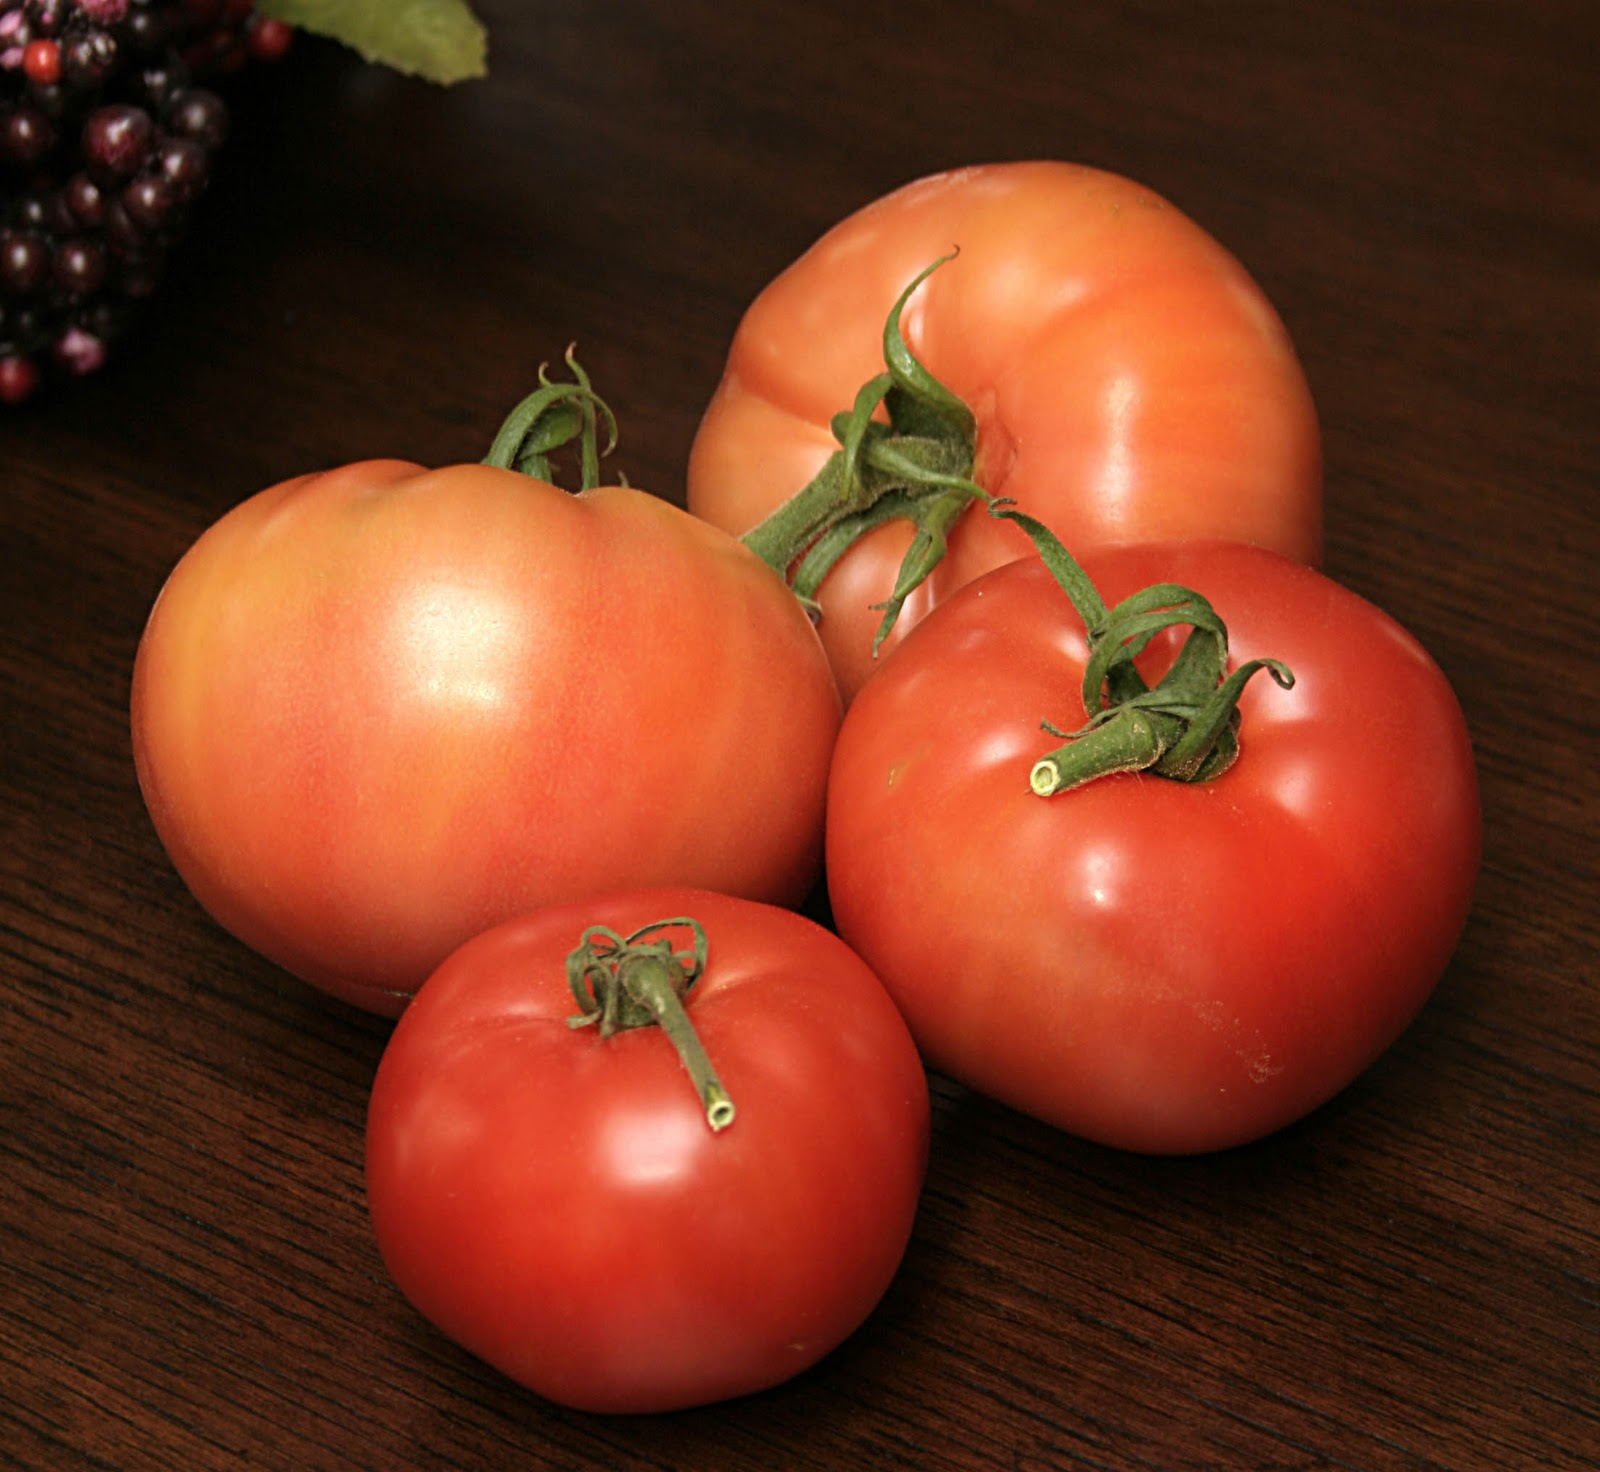 The Juicy Tomatoes Guide to Ripe Living after 50 Susan